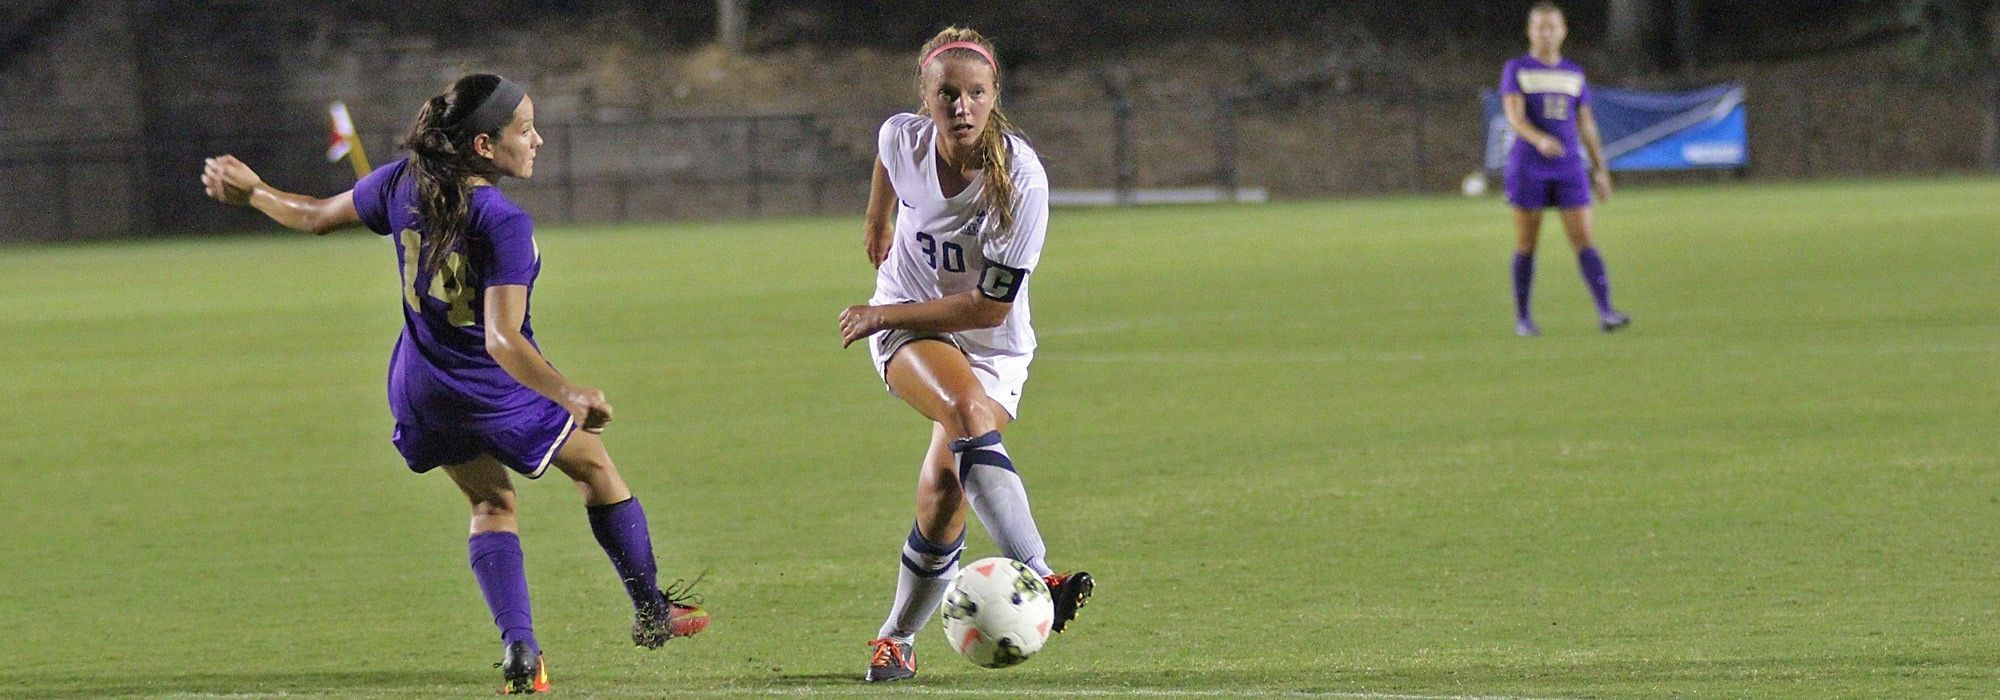 No. 2 Lady Cougars Score Early, Defeat No. 18 North